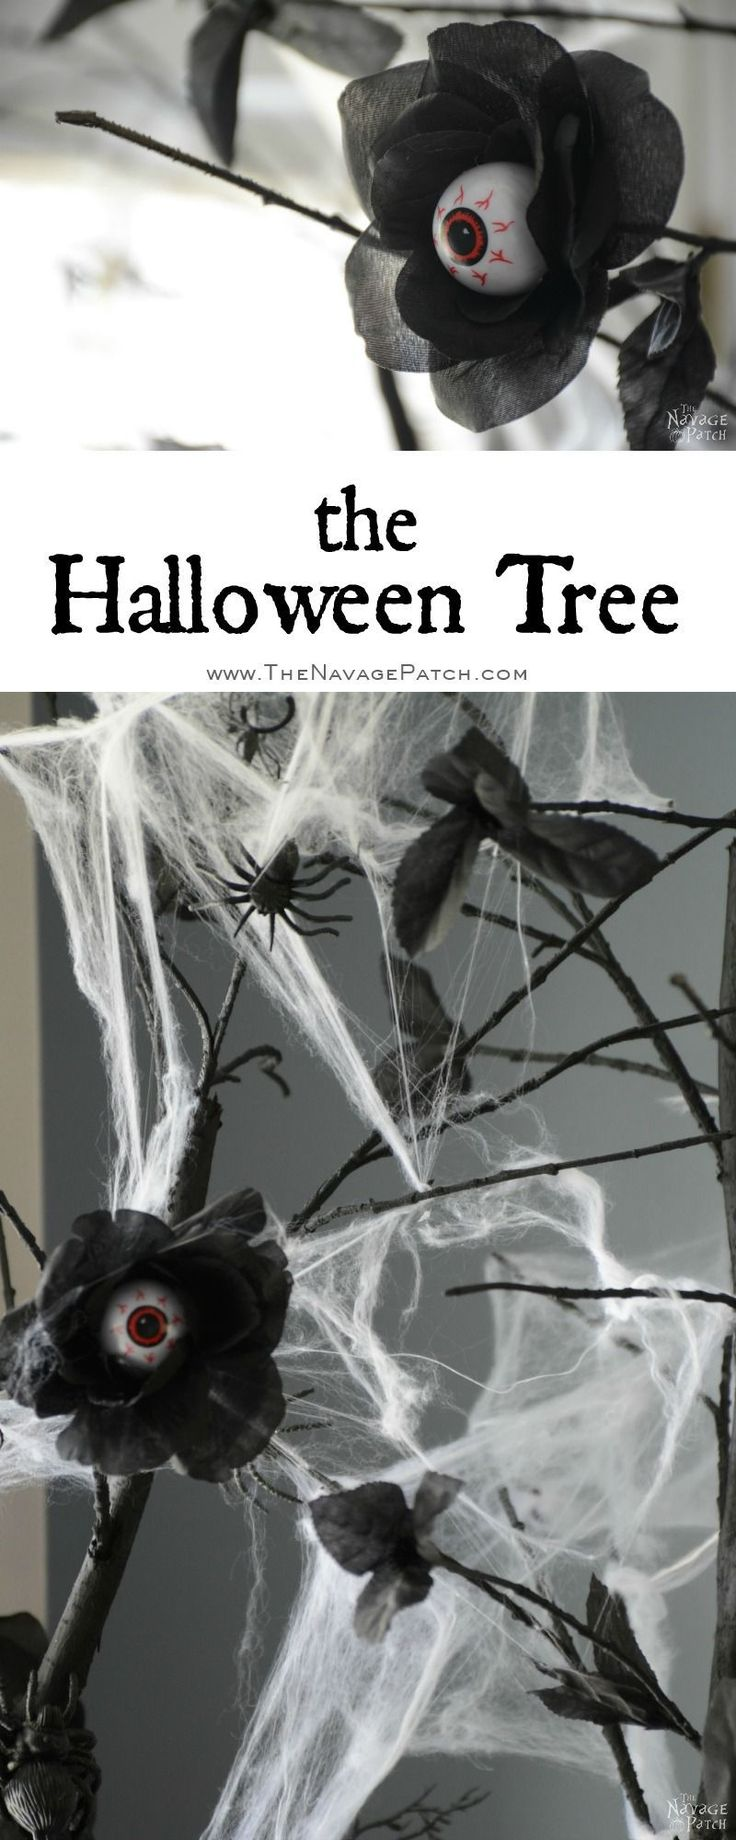 83 Best Crafts Images On Pinterest Diy And Projects Led Lantern Flicker Circuit Hauntforumcom The Halloween Tree Decoration Upcycled Holiday Cheap Easy